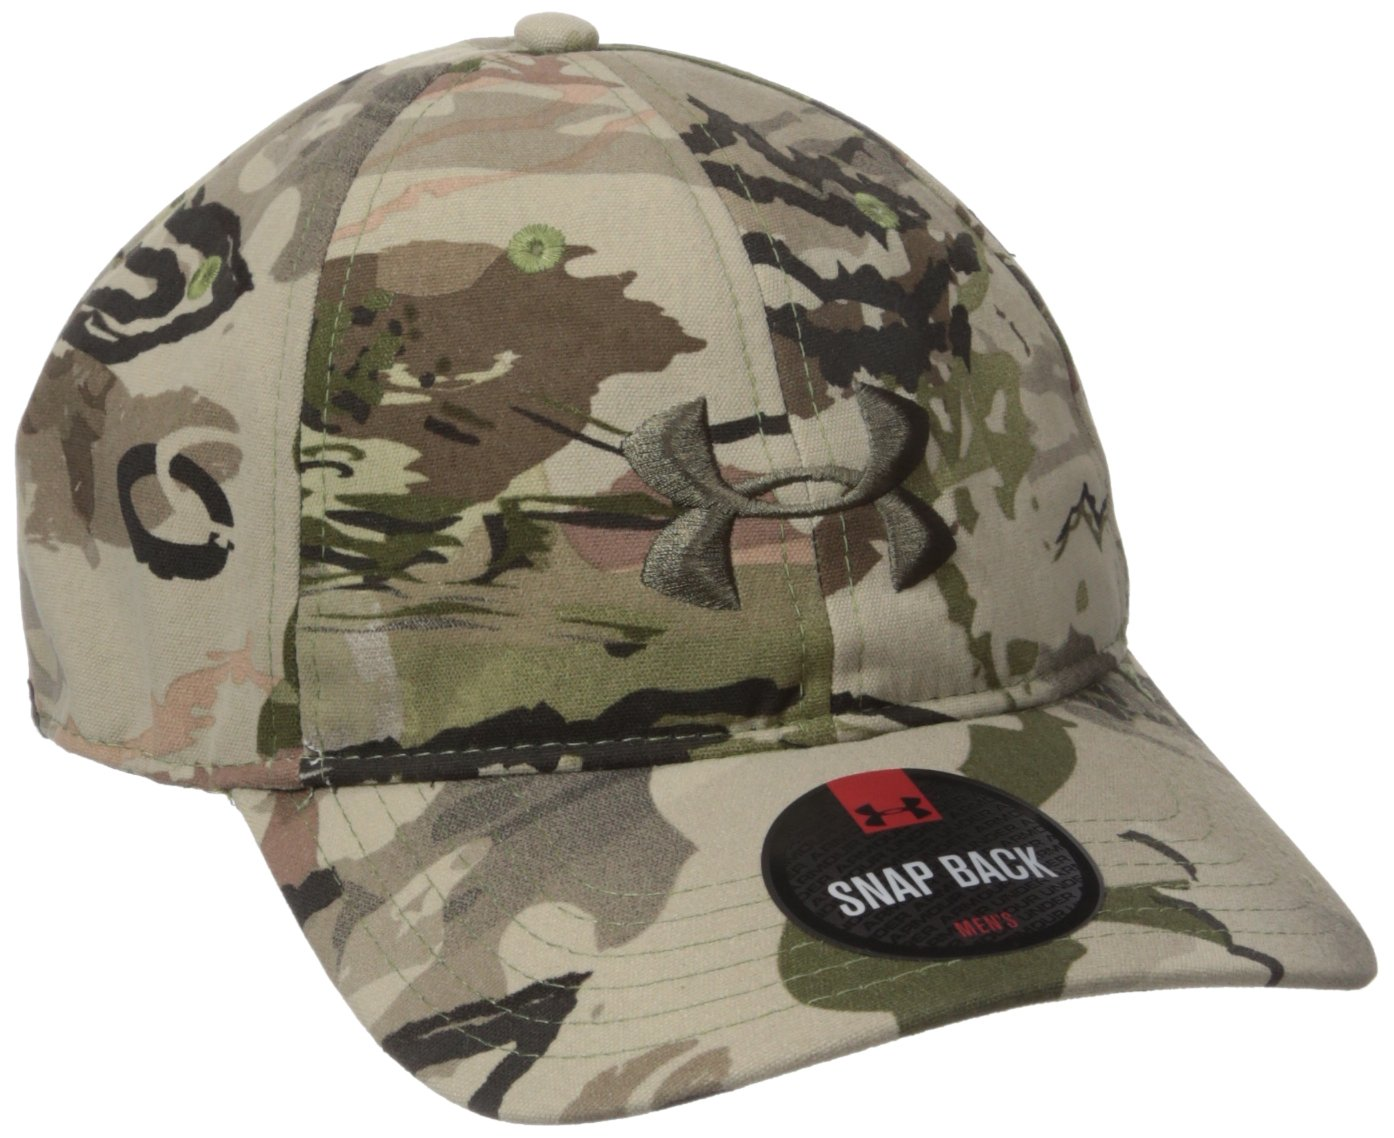 a4b014c65b0 Amazon.com  Under Armour Men s Camo Cap